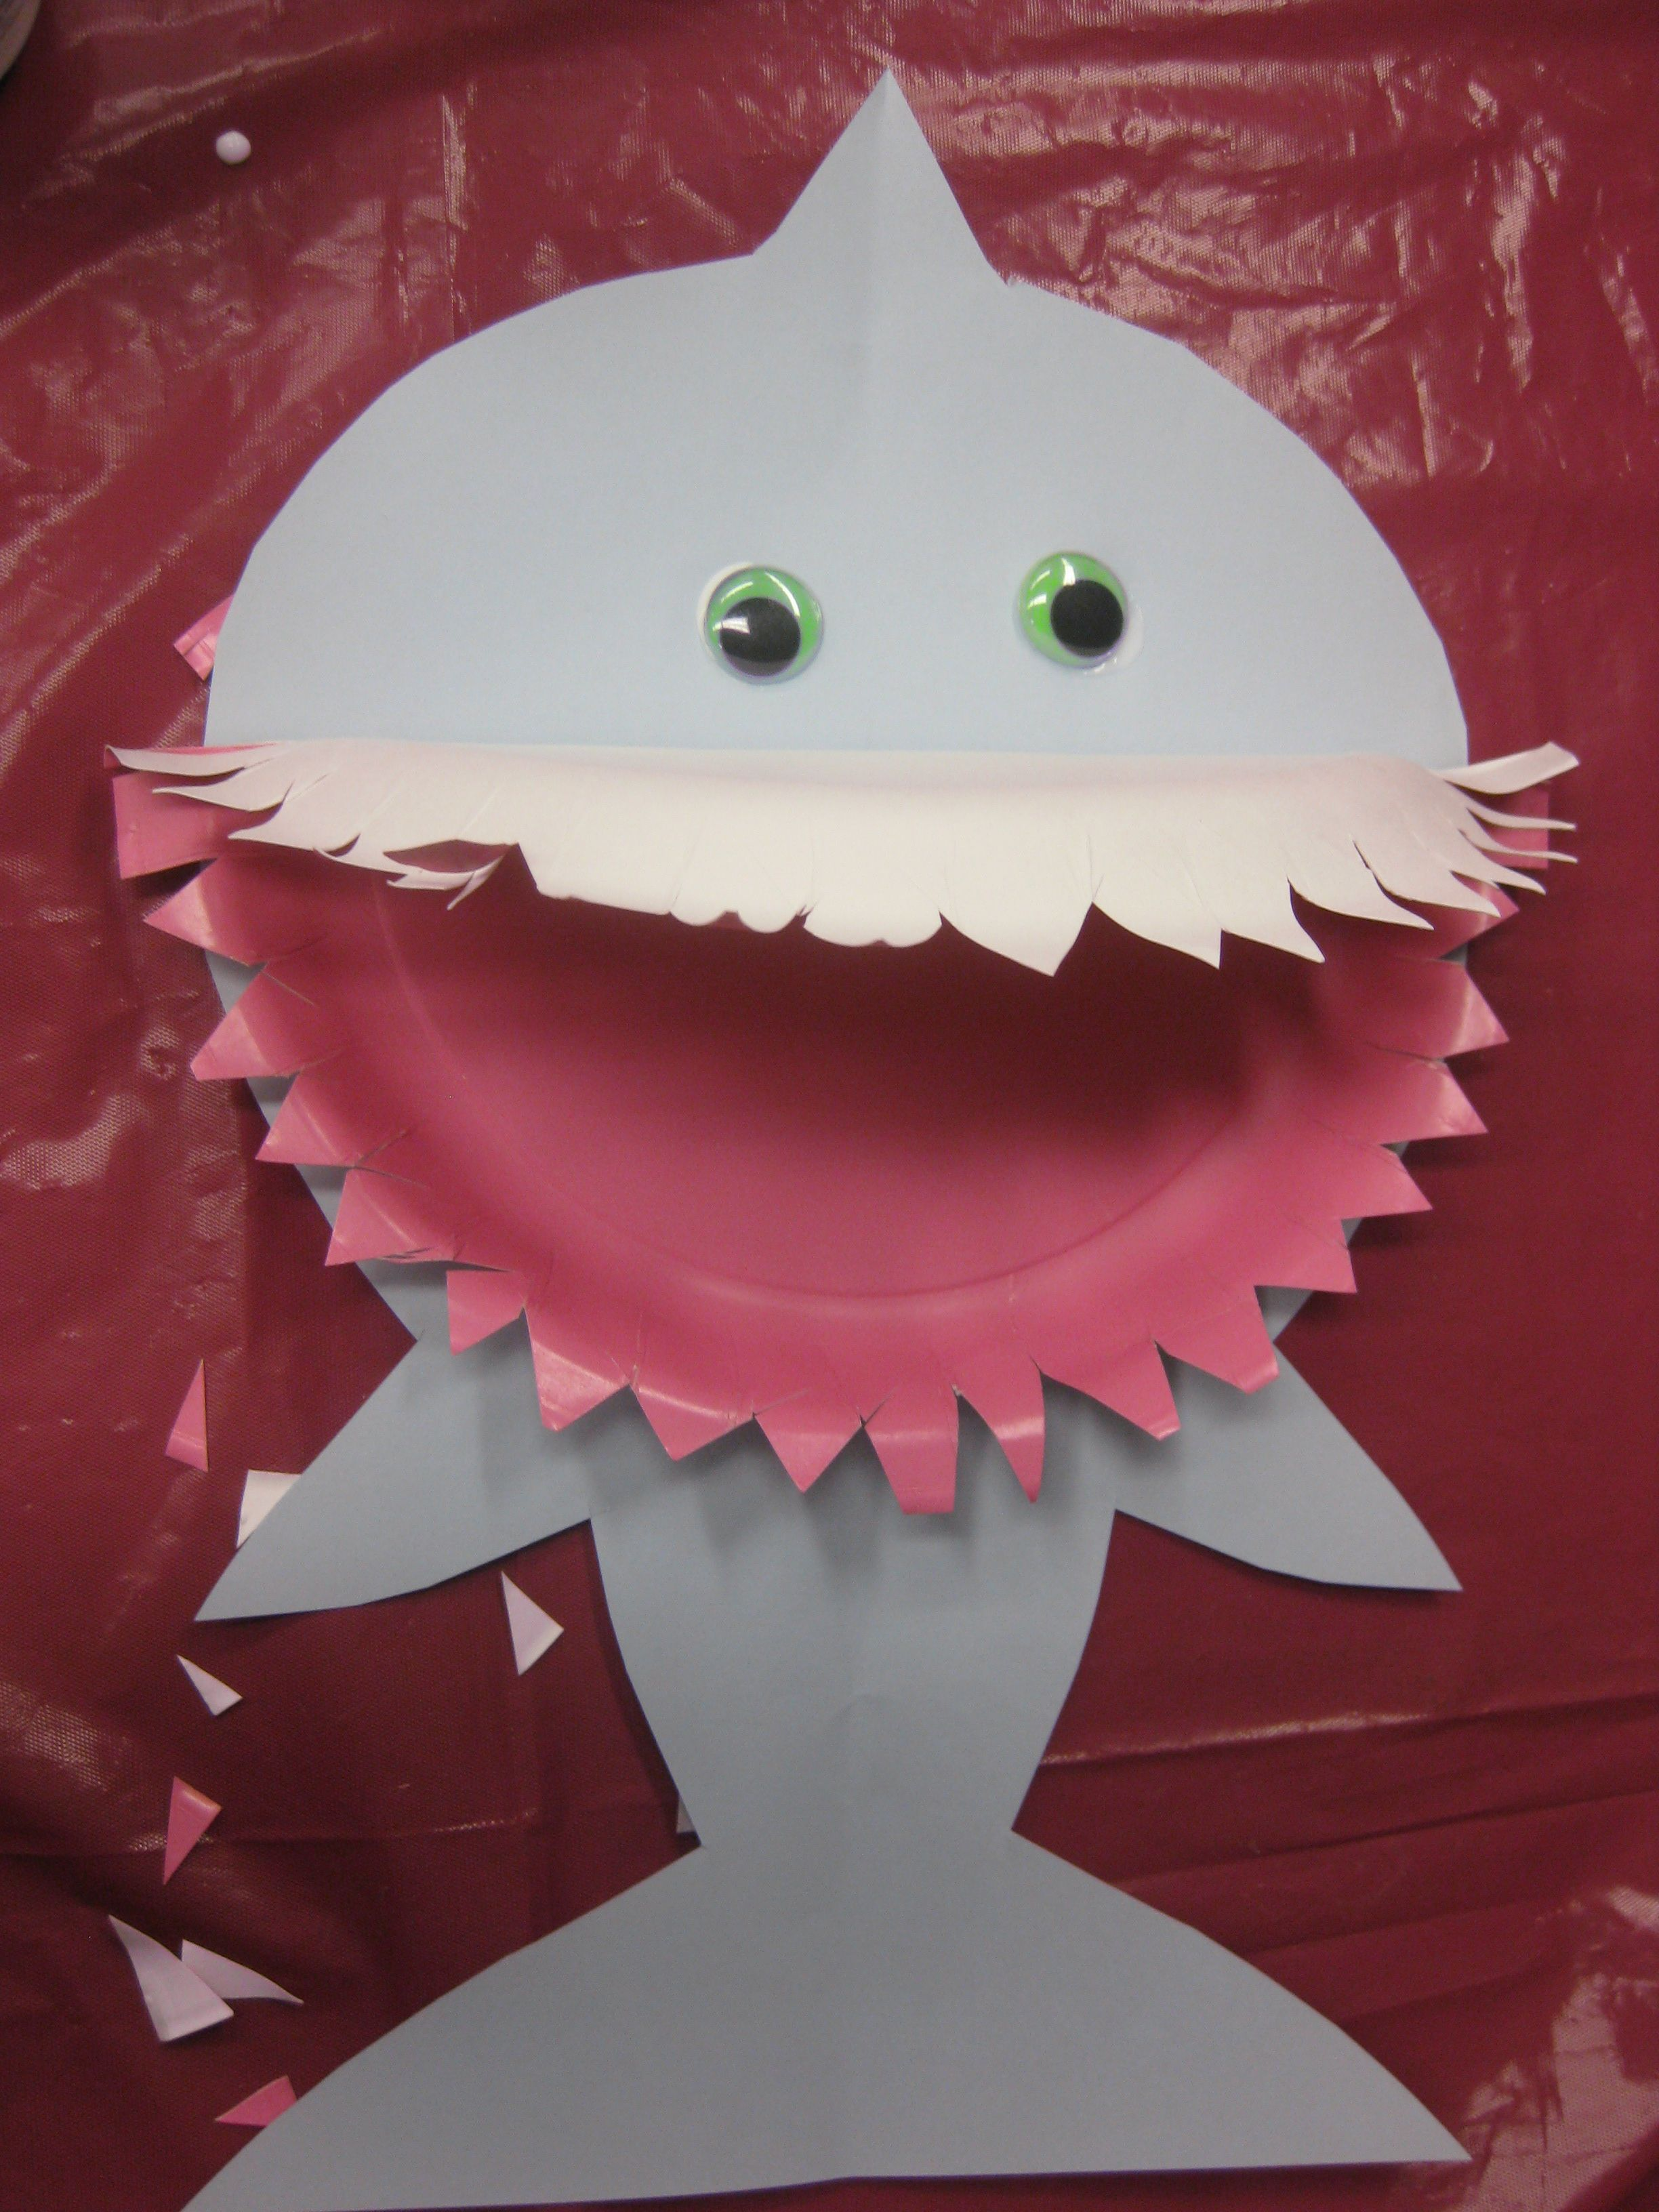 At Our July Paper Craft Program We Beat The Summer Heat By Plunging Into An Ocean Of Creativity